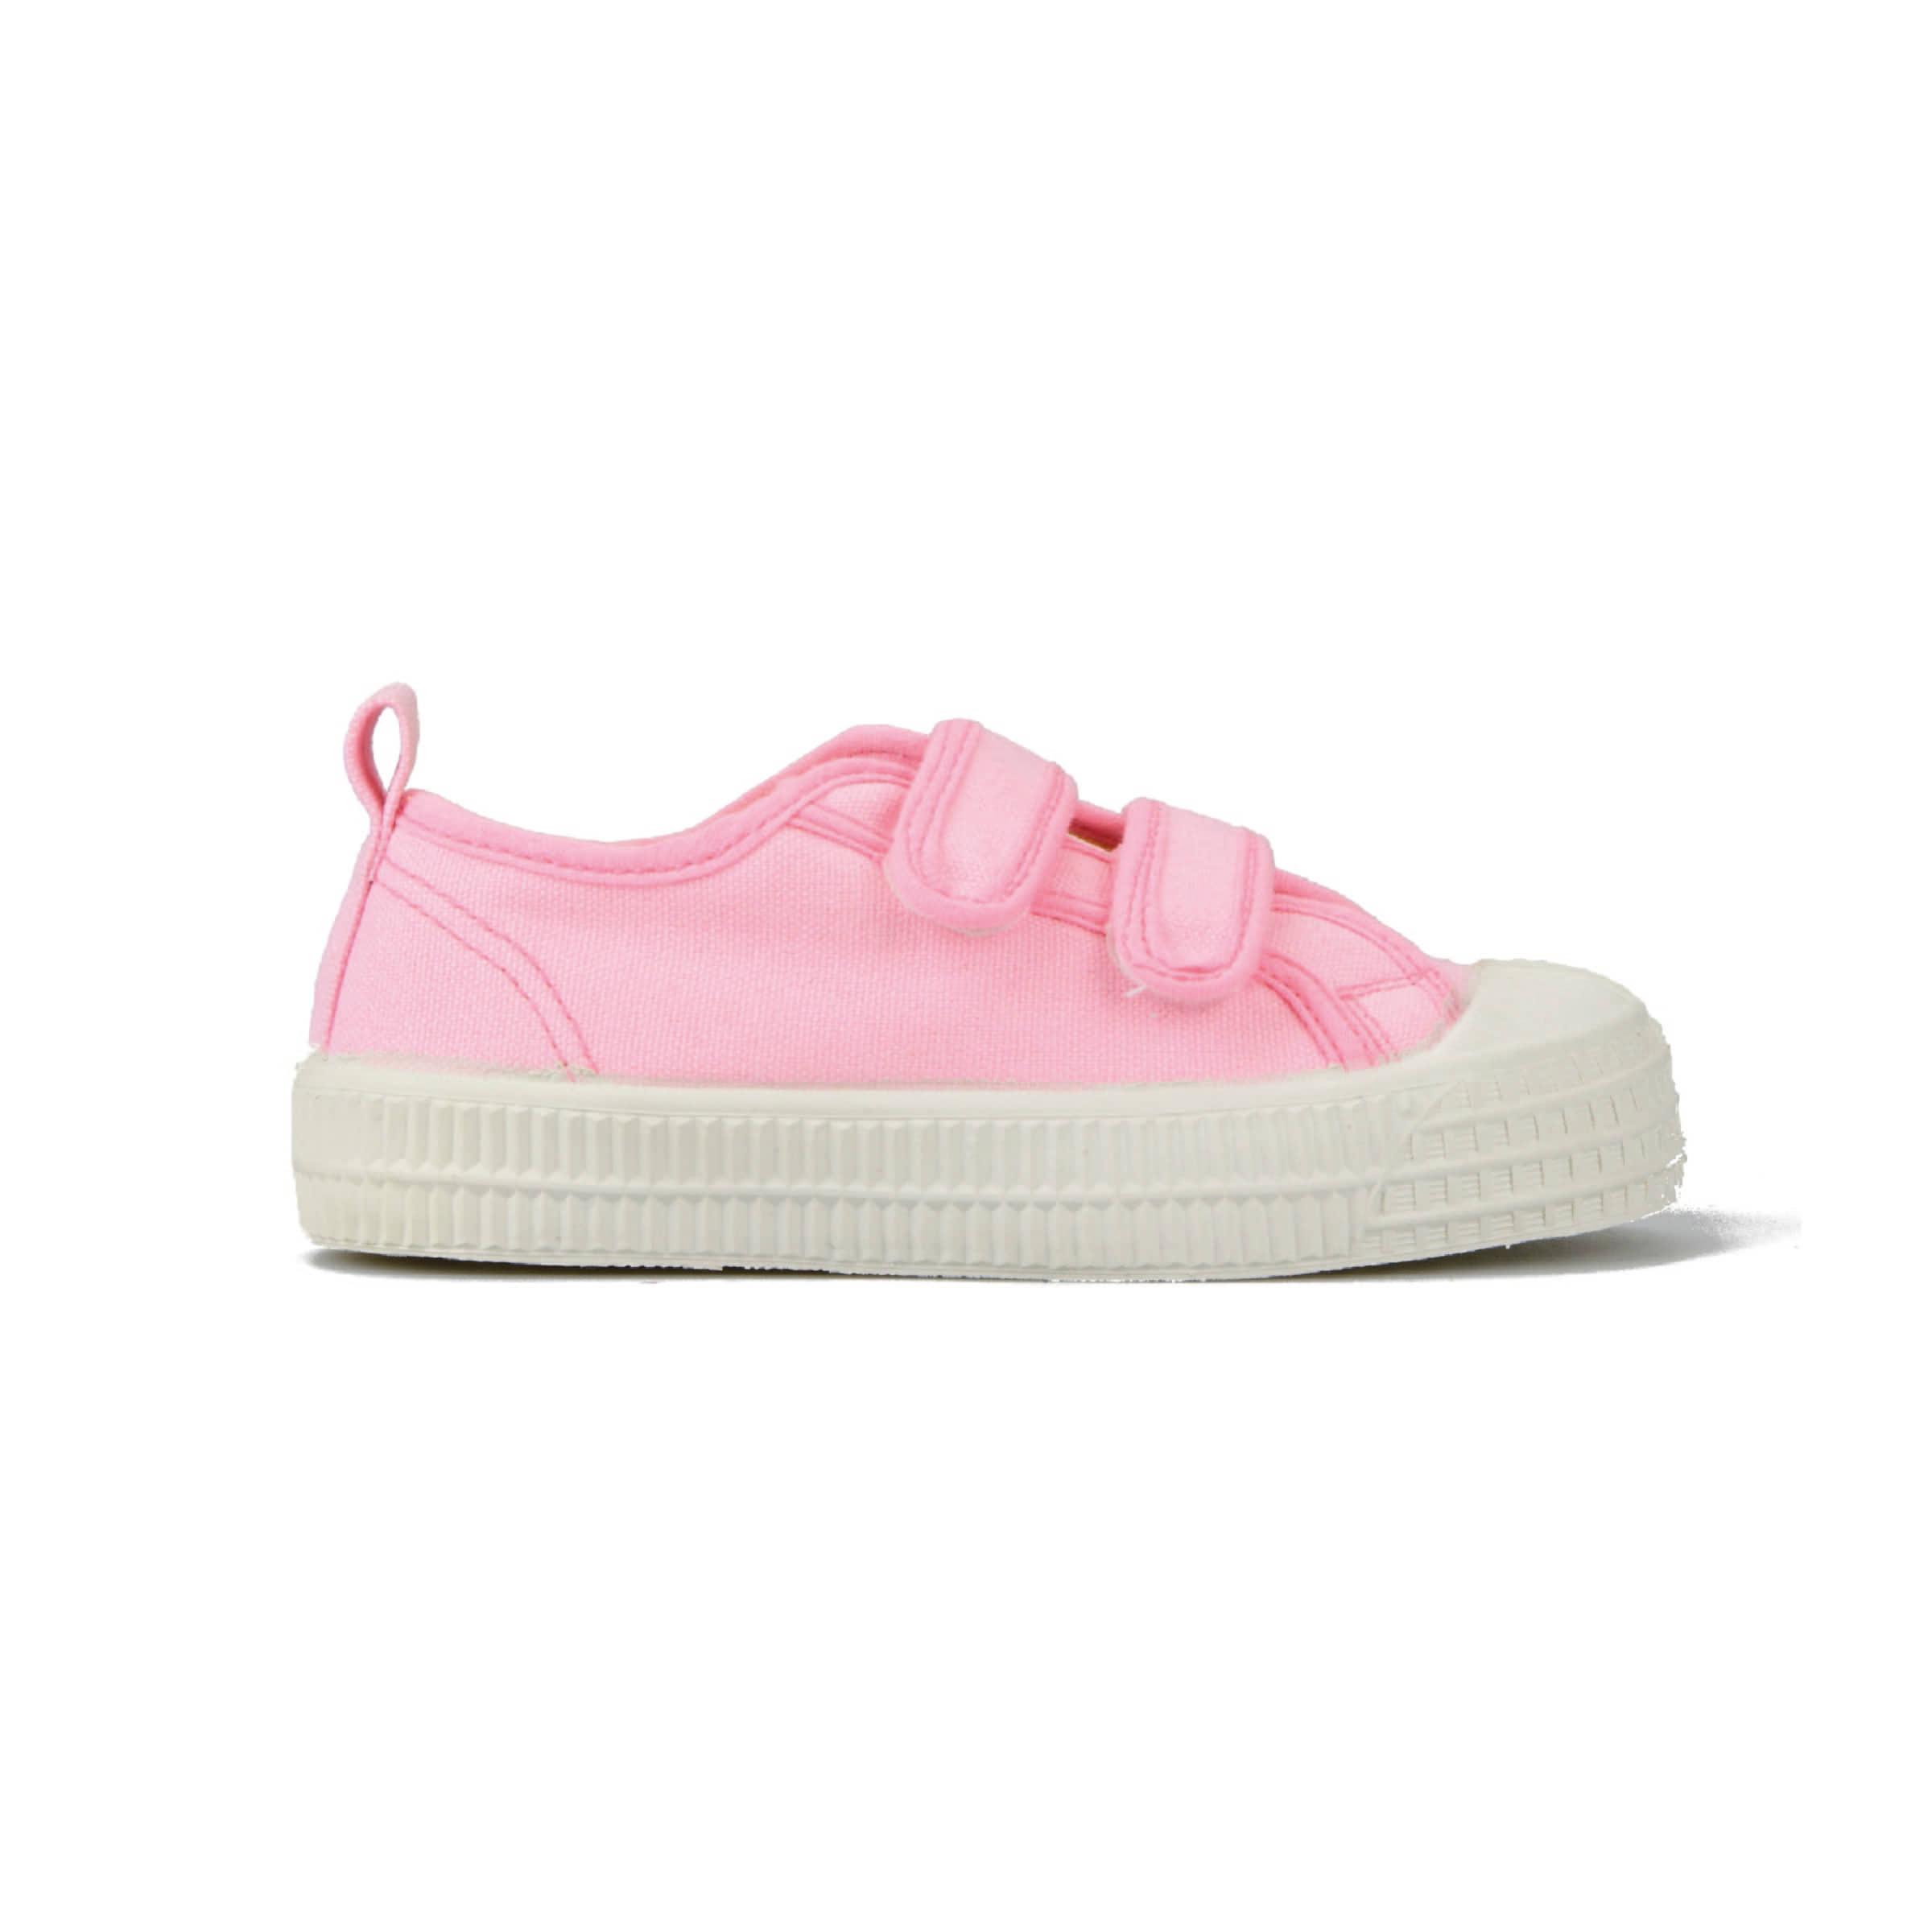 Novesta Velcro sneakers - Pink (24-26사이즈 가능, 당일발송)